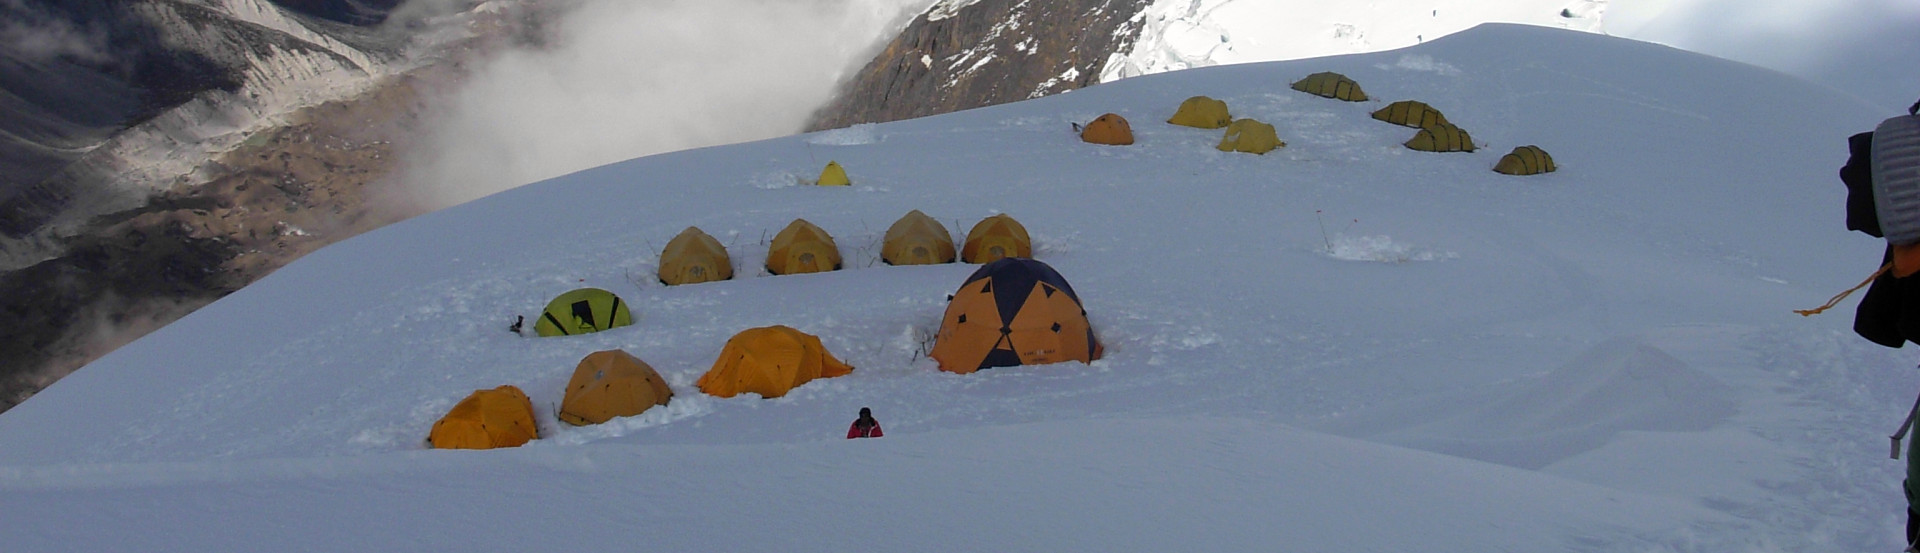 5 extreme Himalaya adventures in Nepal Including mountaineering